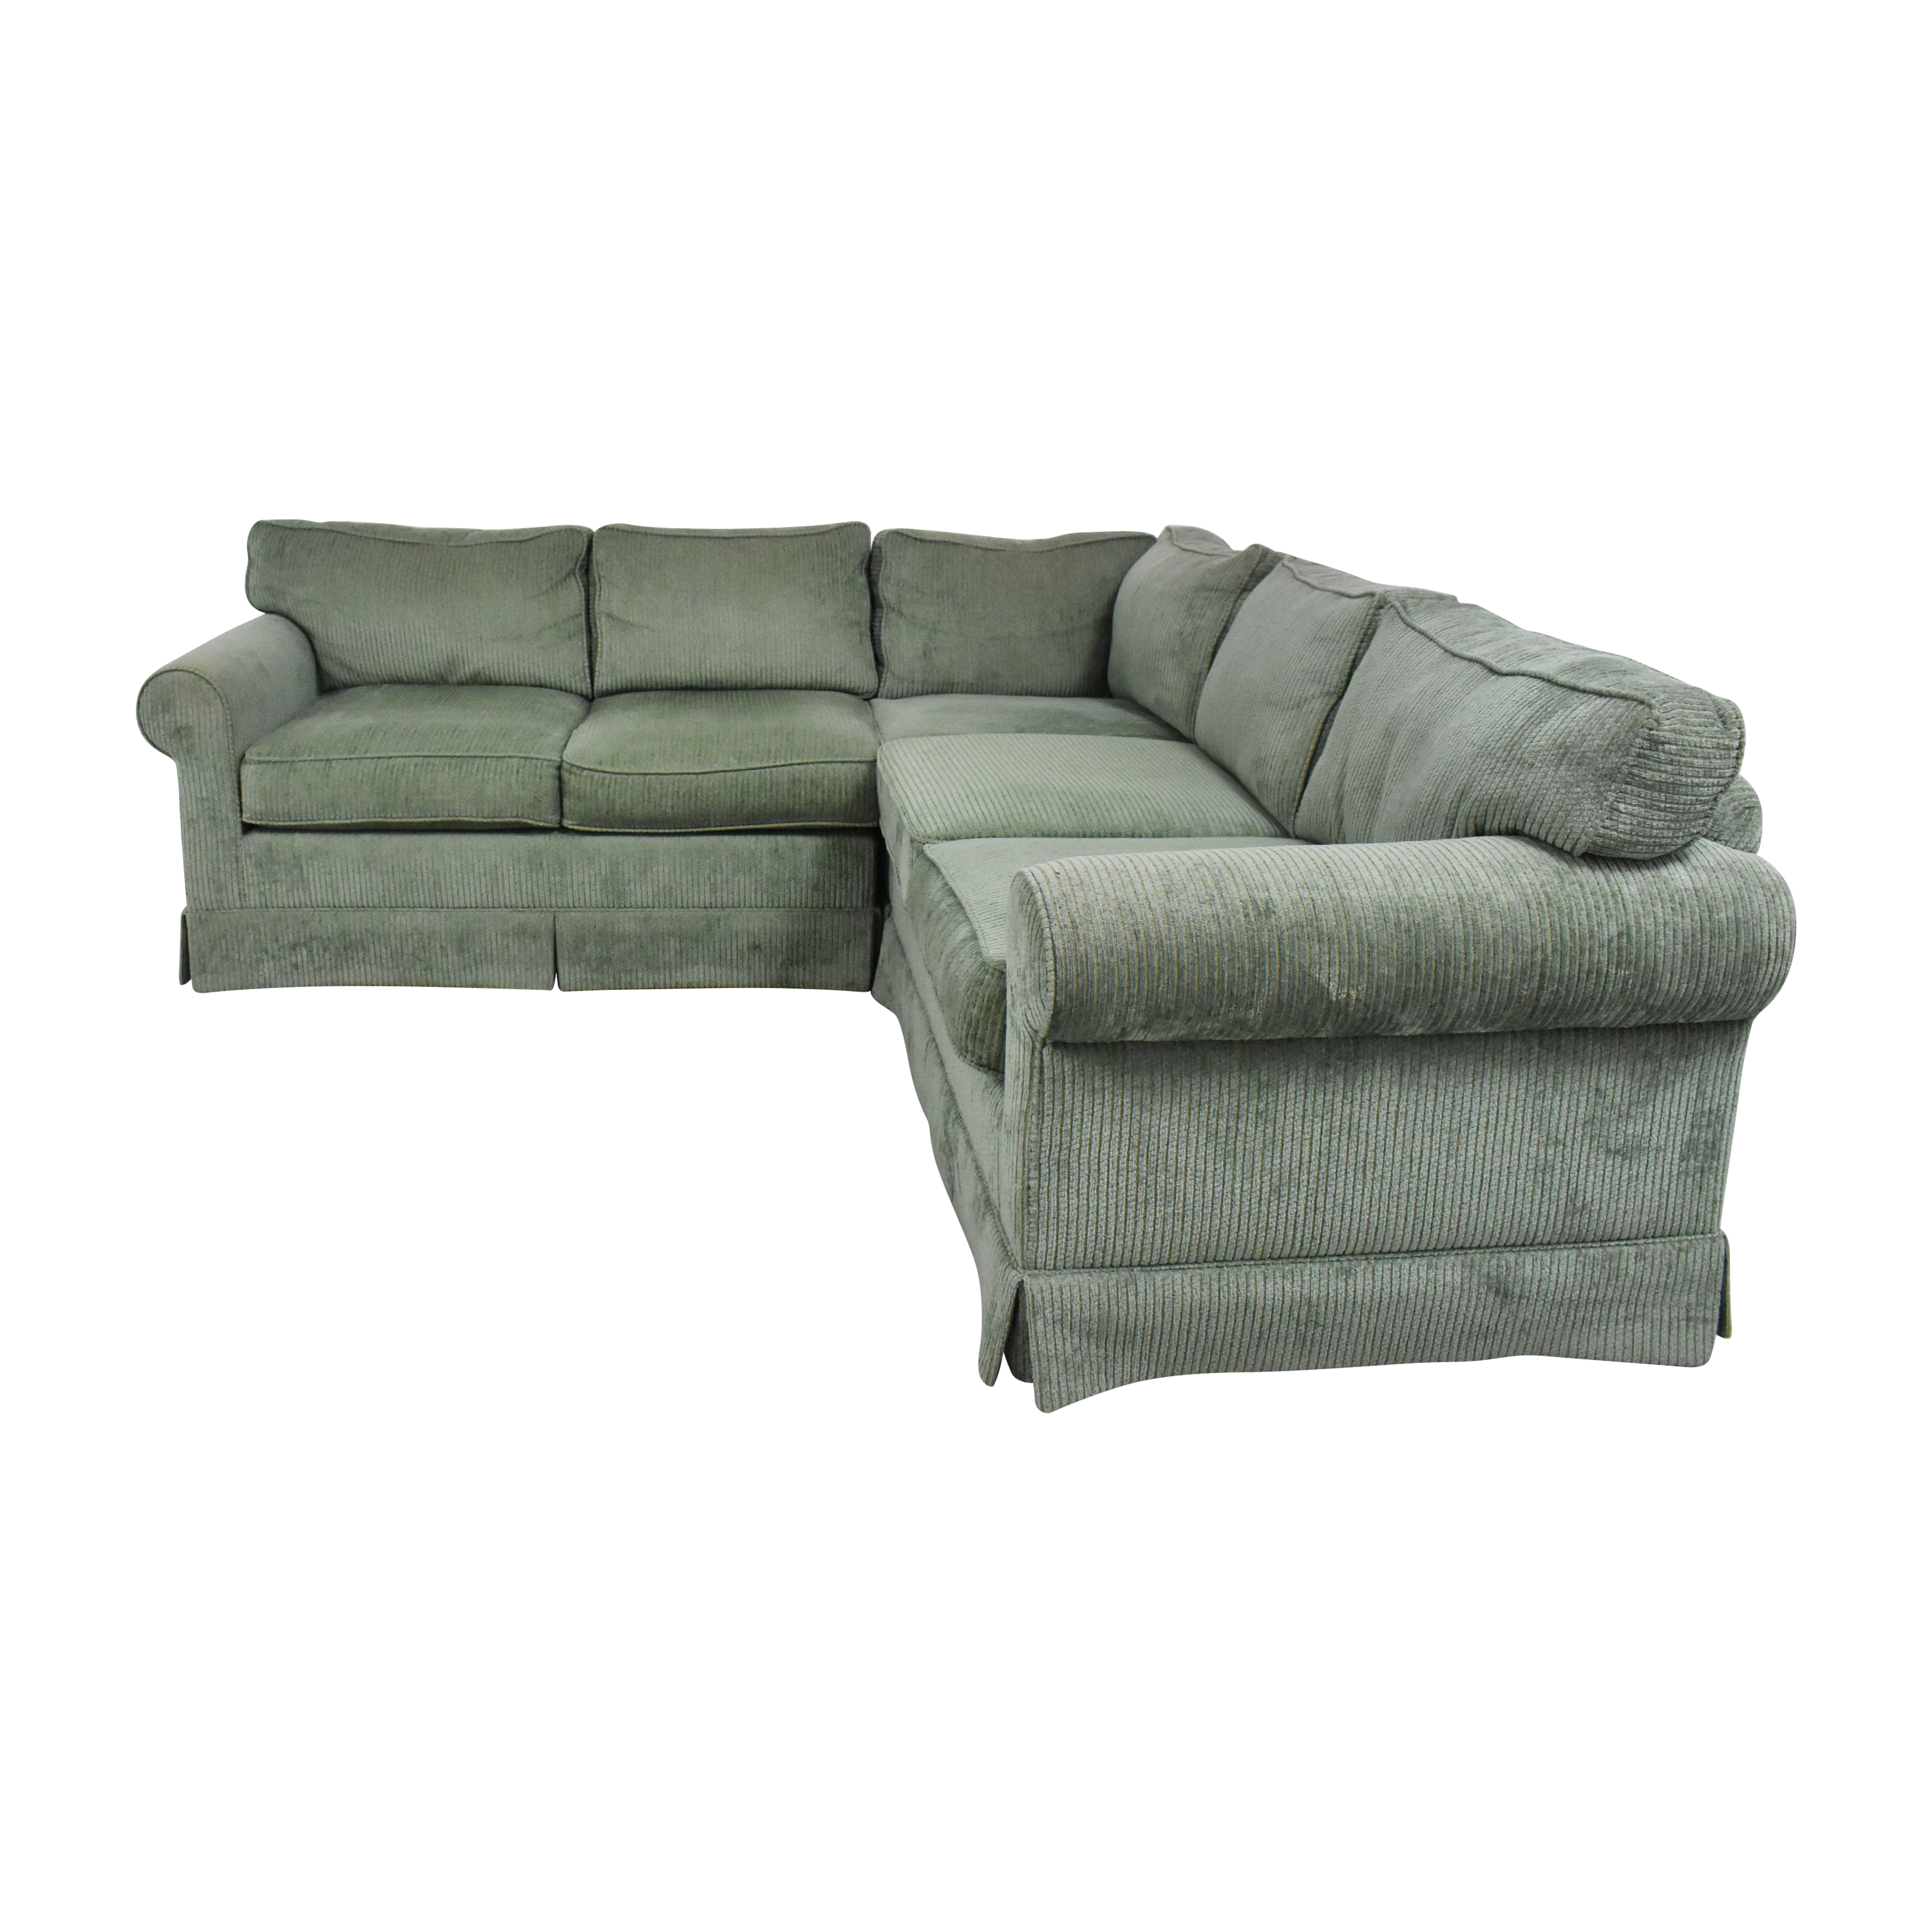 Sofas & Chairs of Minnesota Sofas & Chairs Copley Sectional Sofa Sofas